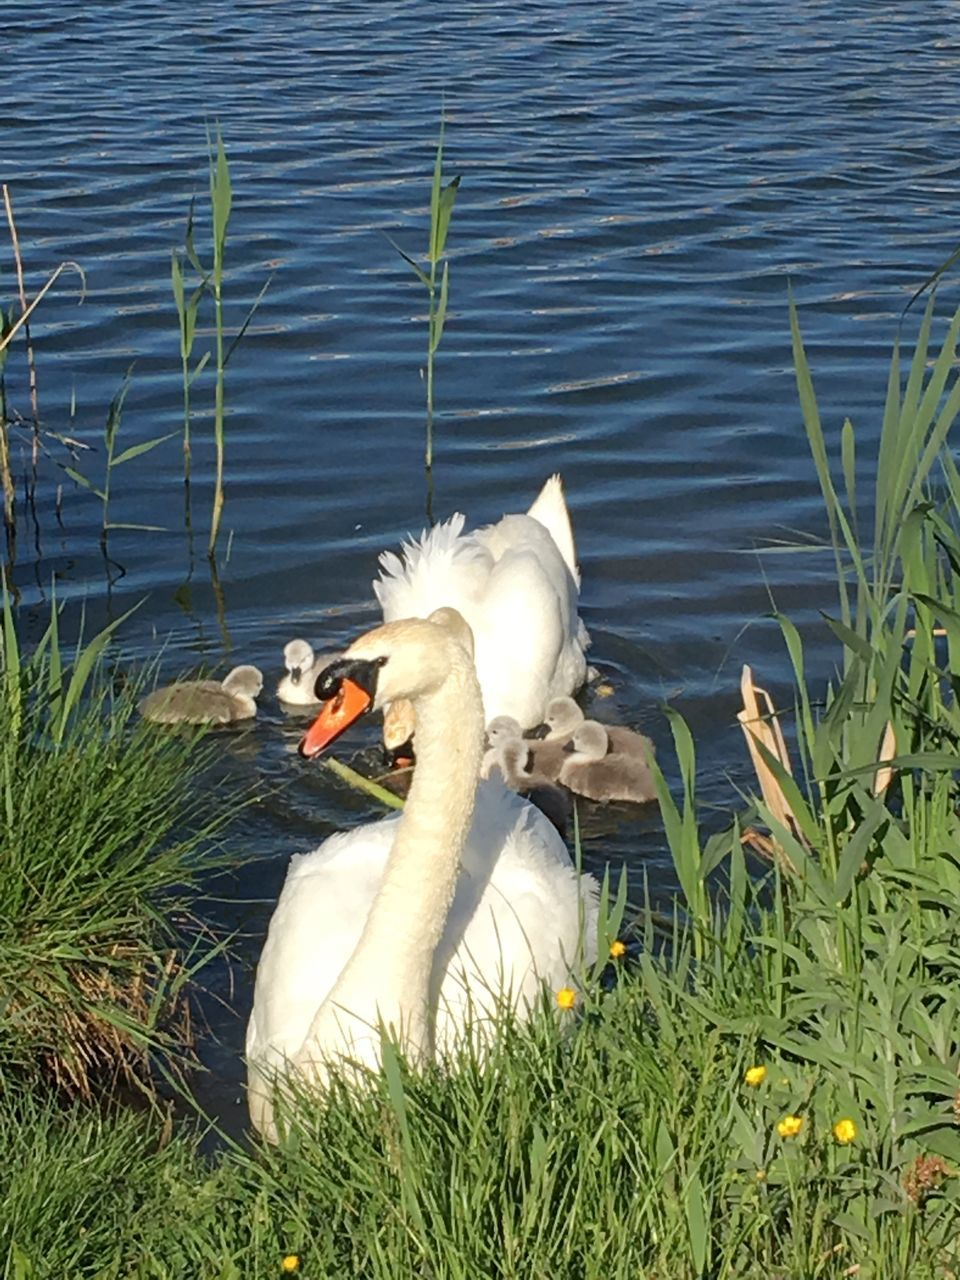 animal themes, animals in the wild, lake, swan, nature, grass, water, bird, white color, water bird, animal wildlife, day, one animal, no people, outdoors, swimming, beauty in nature